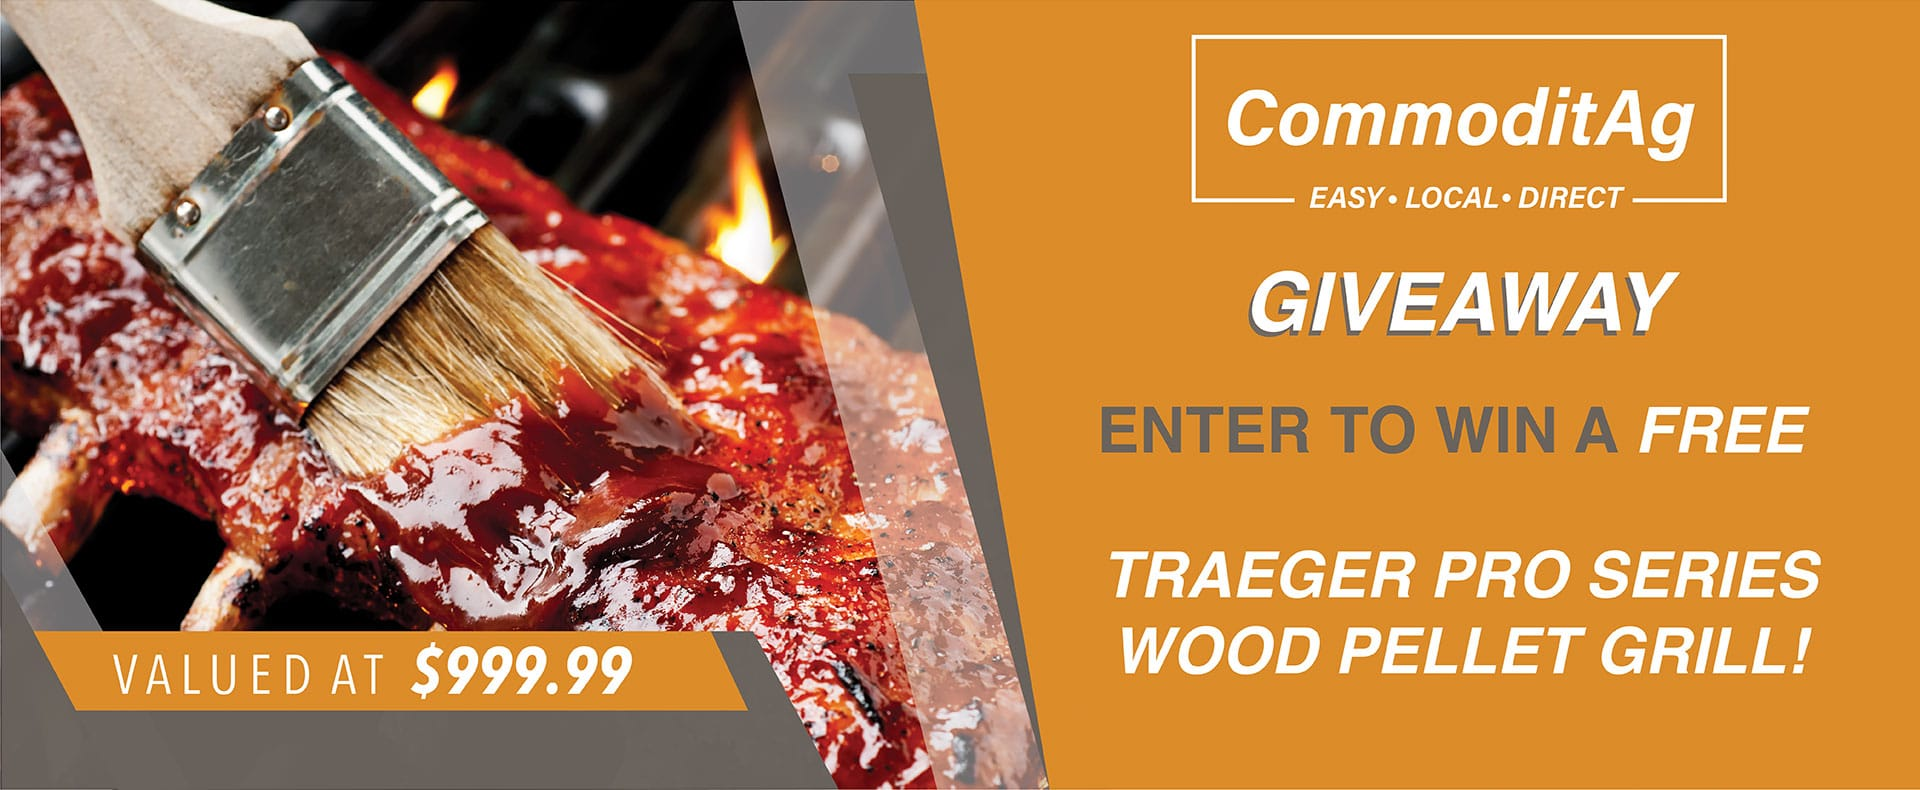 Brush rubbing barbecue sauce over ribs on a grill with giveaway details